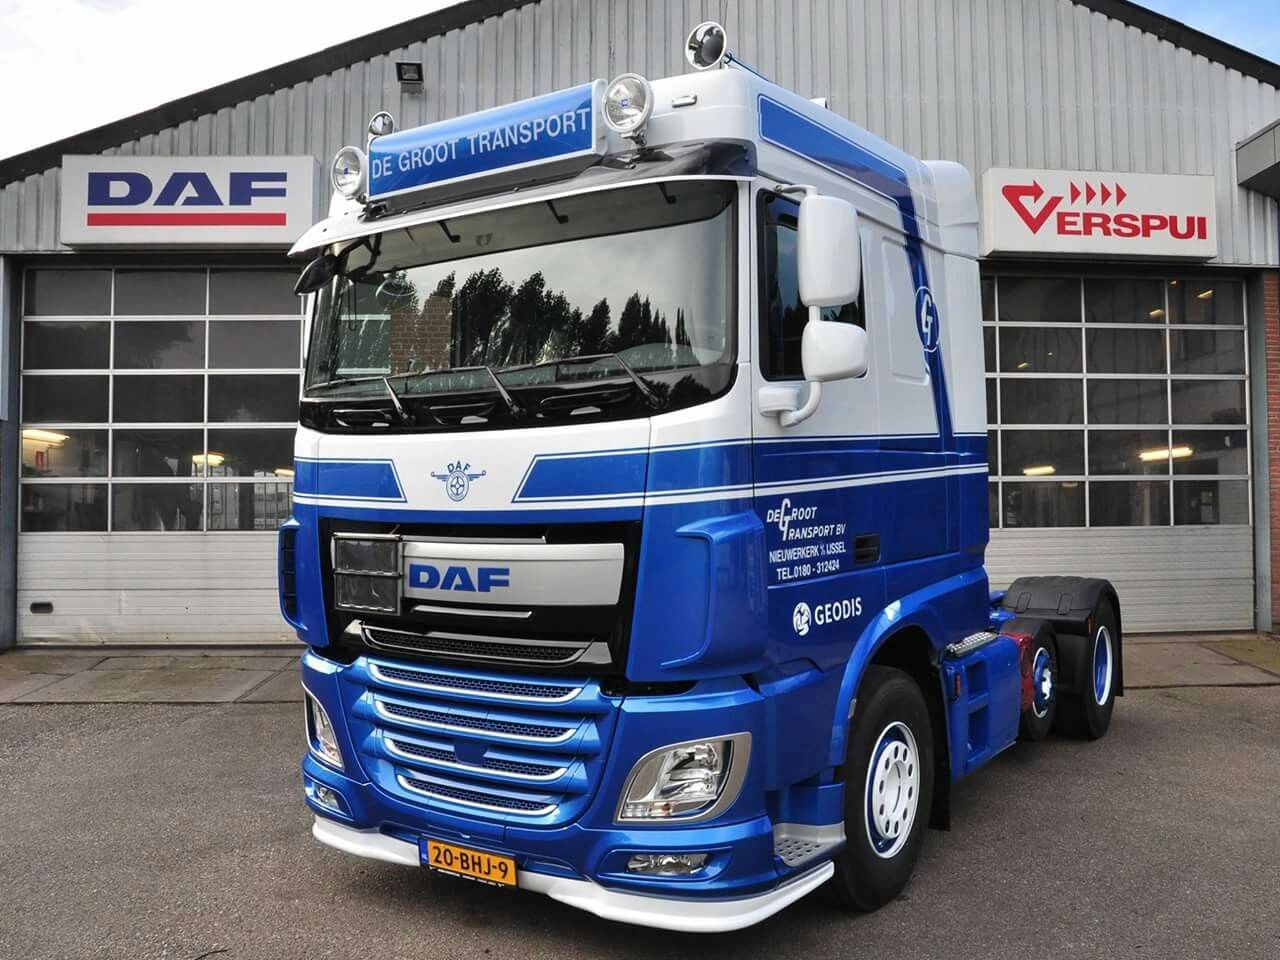 daf xf 106 mx13 460 ftp daf trucks pinterest. Black Bedroom Furniture Sets. Home Design Ideas